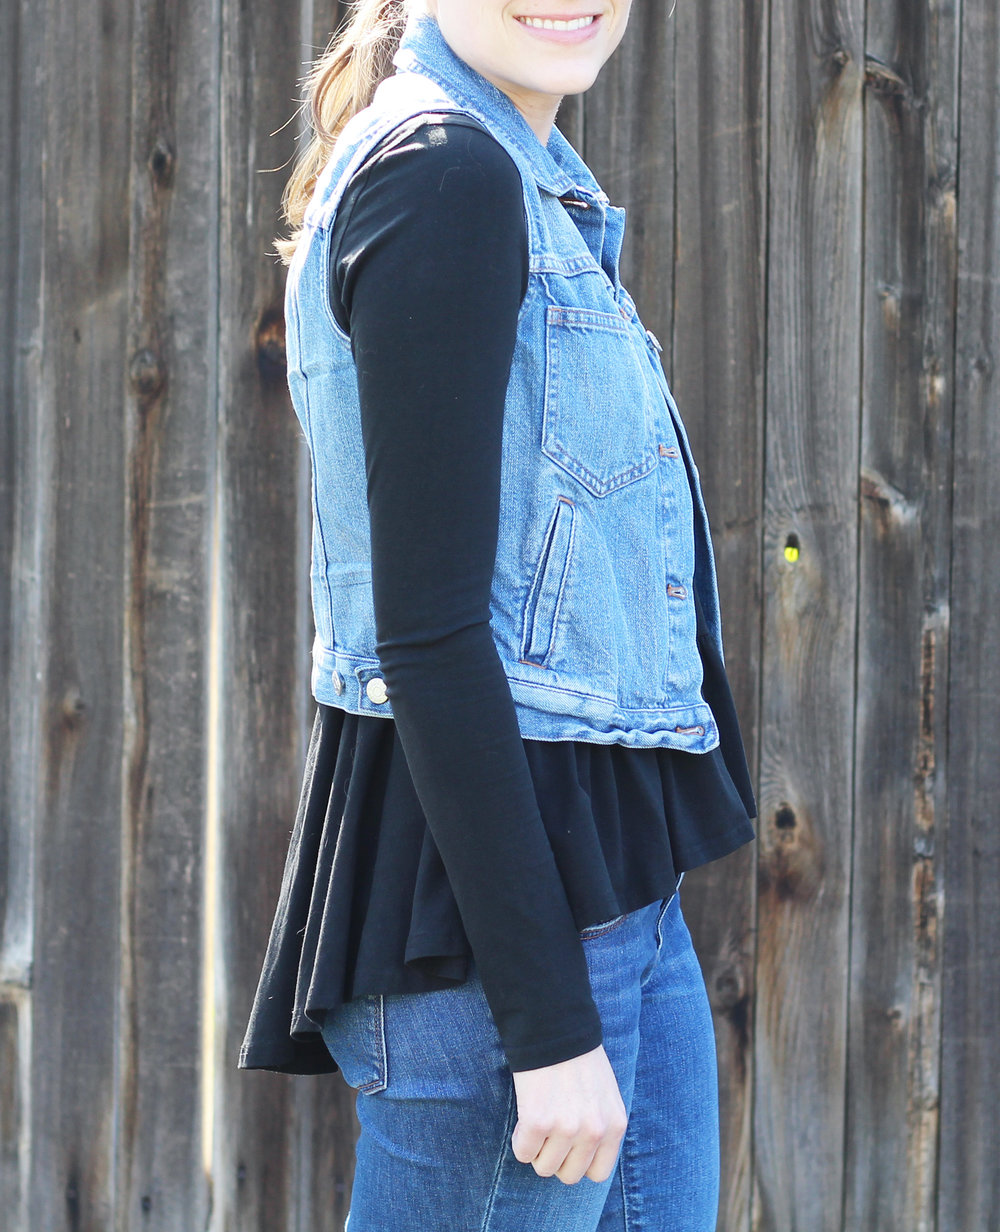 Black peplum blouse outfit with denim vest — Cotton Cashmere Cat Hair